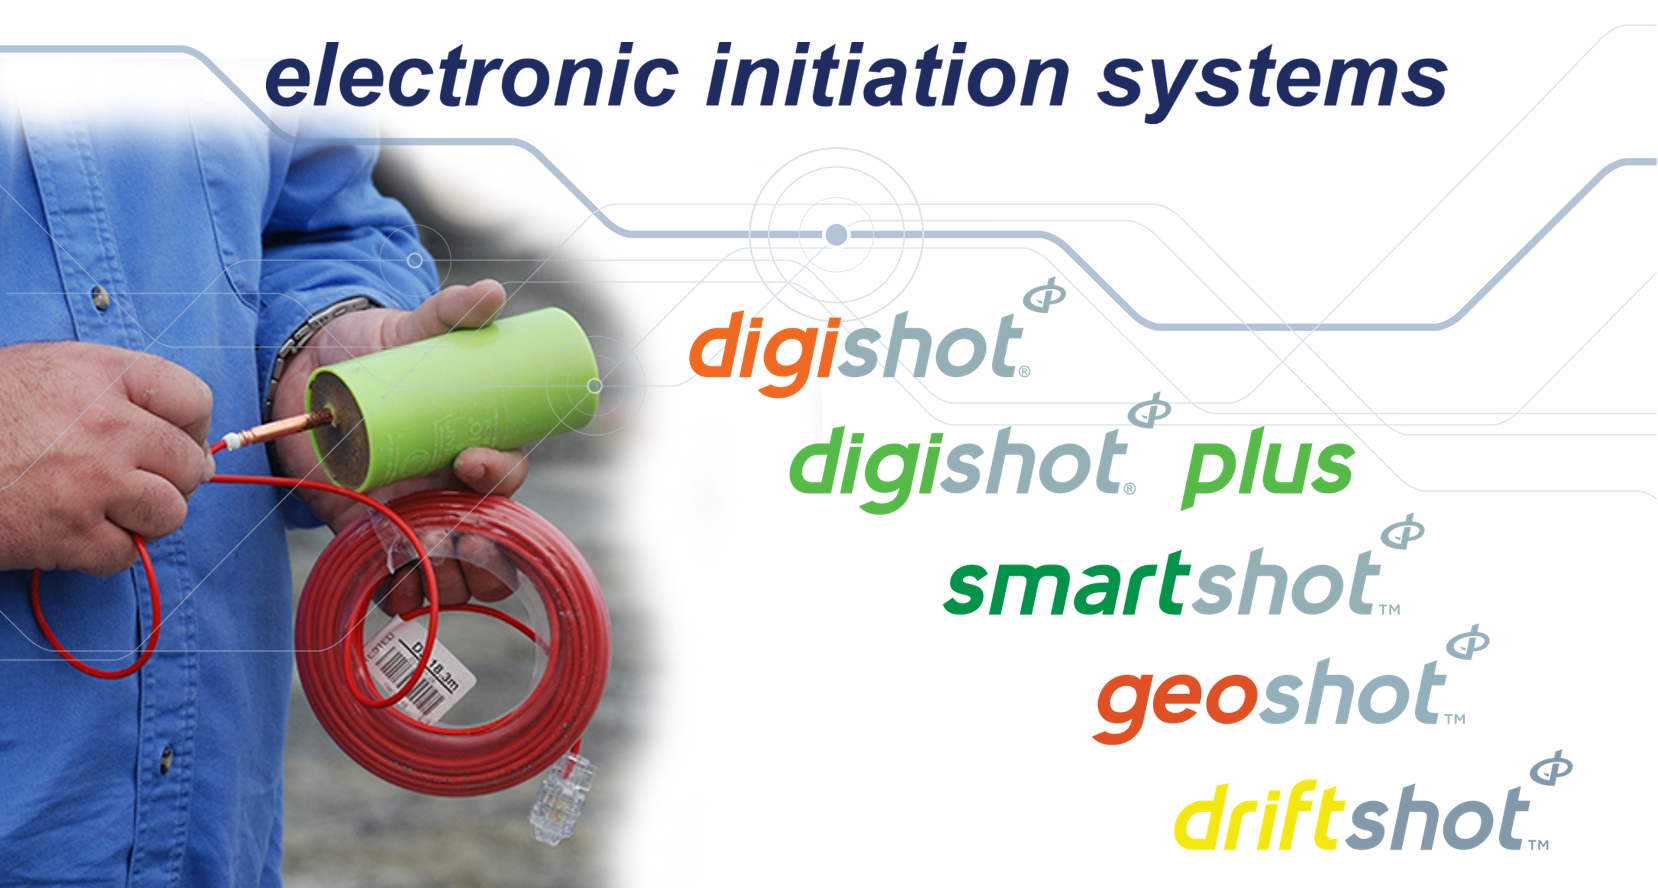 Dyno Nobel Electronic Initiation Systems